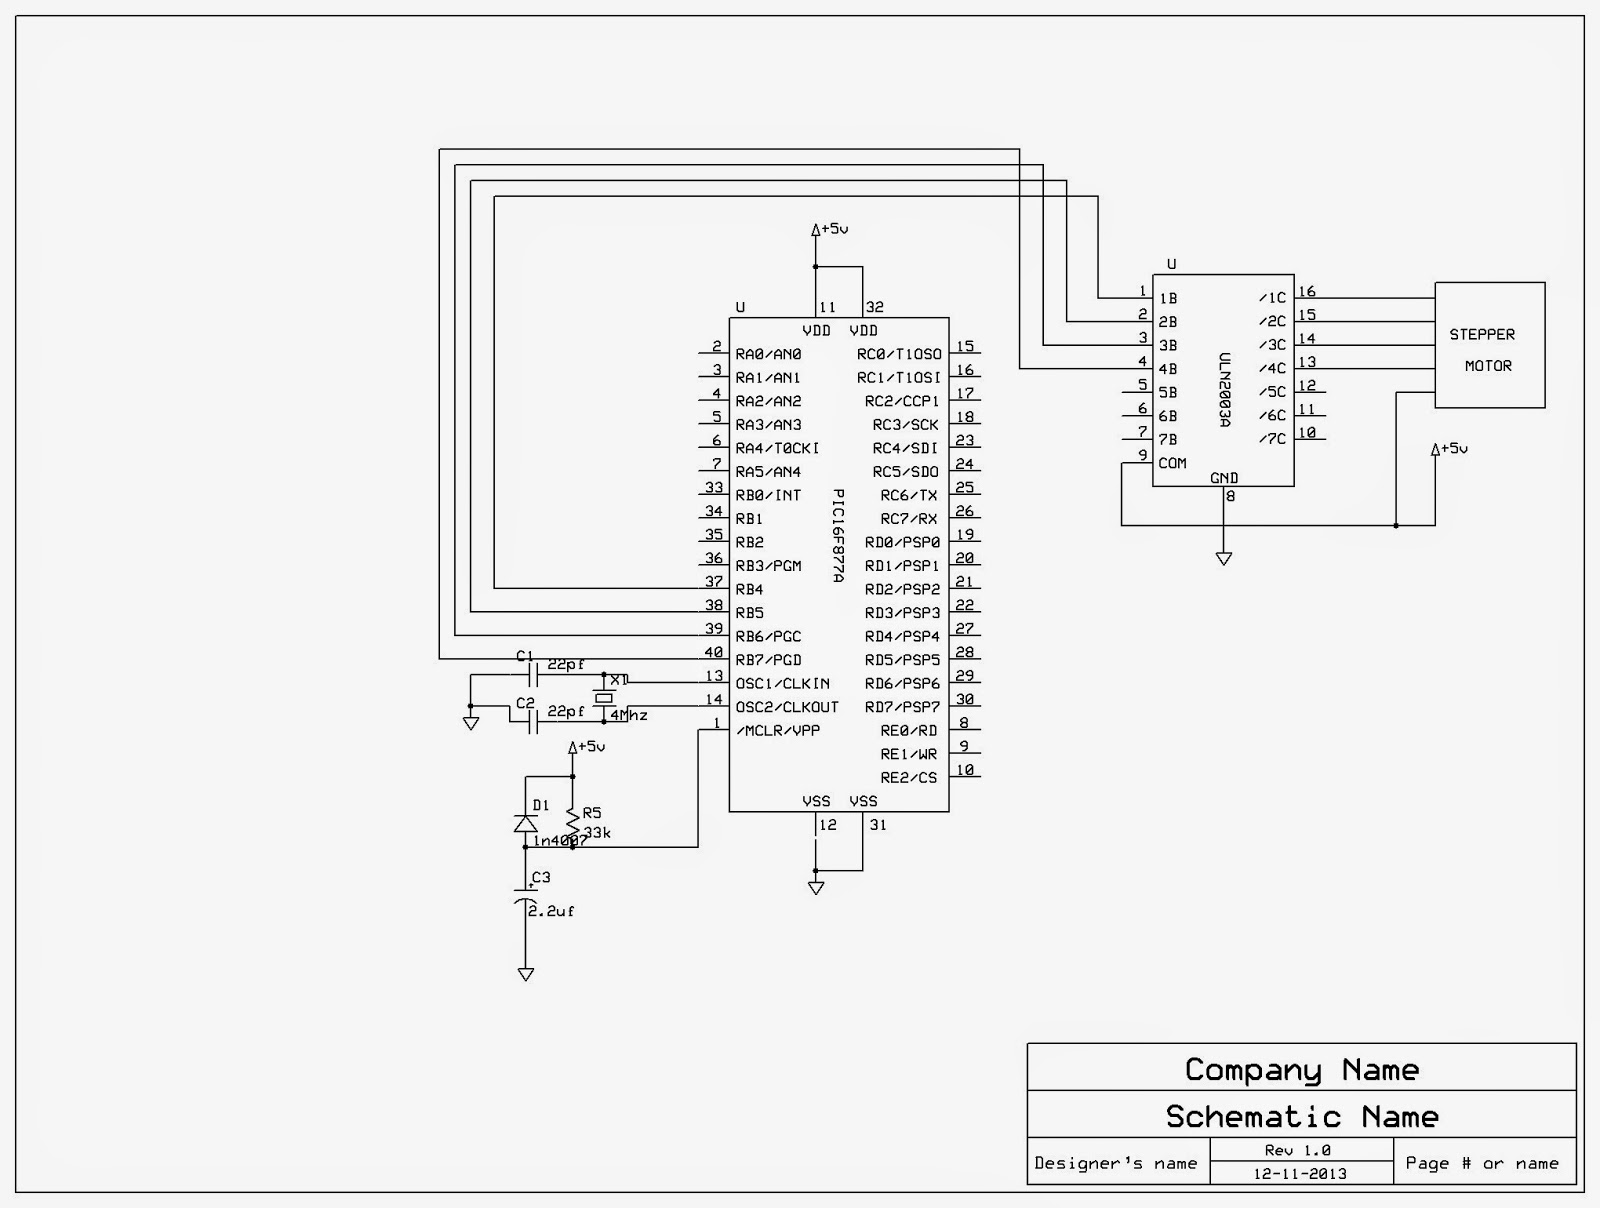 steppermotor.bmp stepper motor interfacing with pic 16f877a pic16f877a projects emergency lighting ctu wiring diagram at arjmand.co